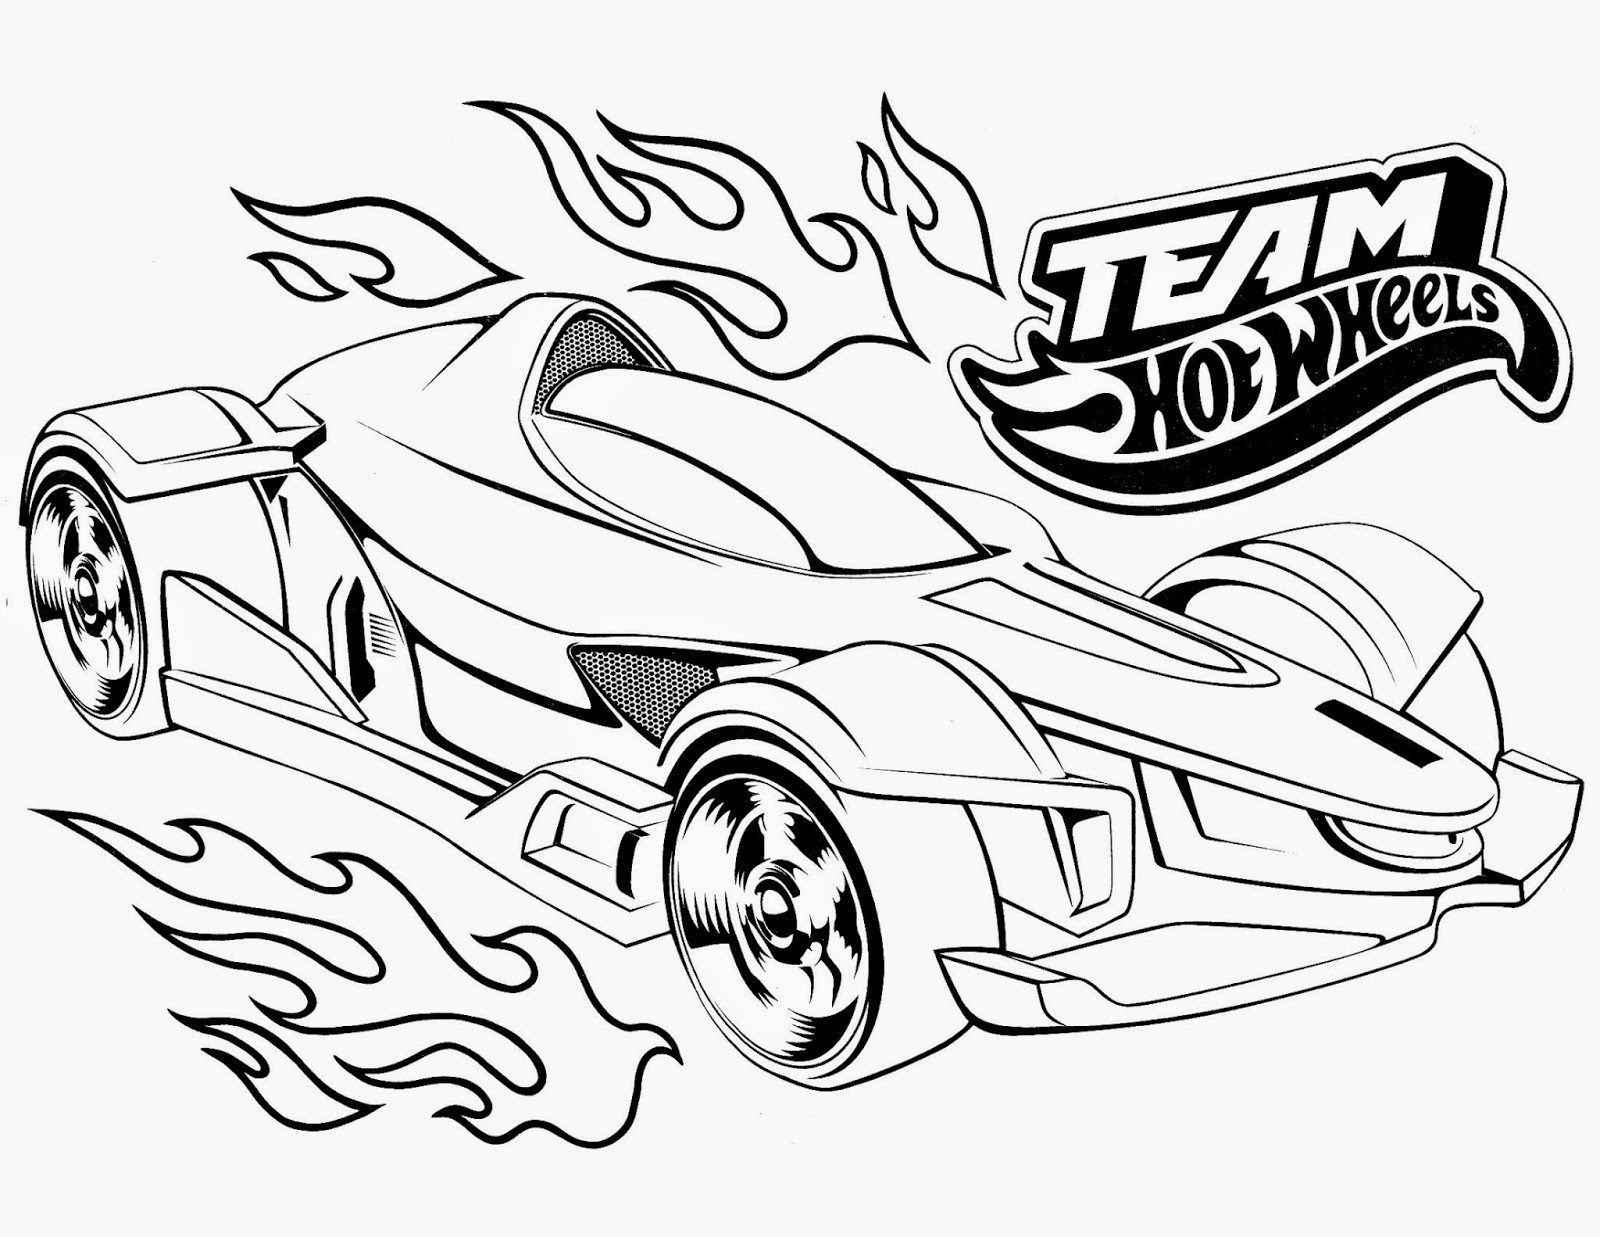 22 Awesome Photo Of Race Car Coloring Pages Davemelillo Com Cars Coloring Pages Race Car Coloring Pages Truck Coloring Pages